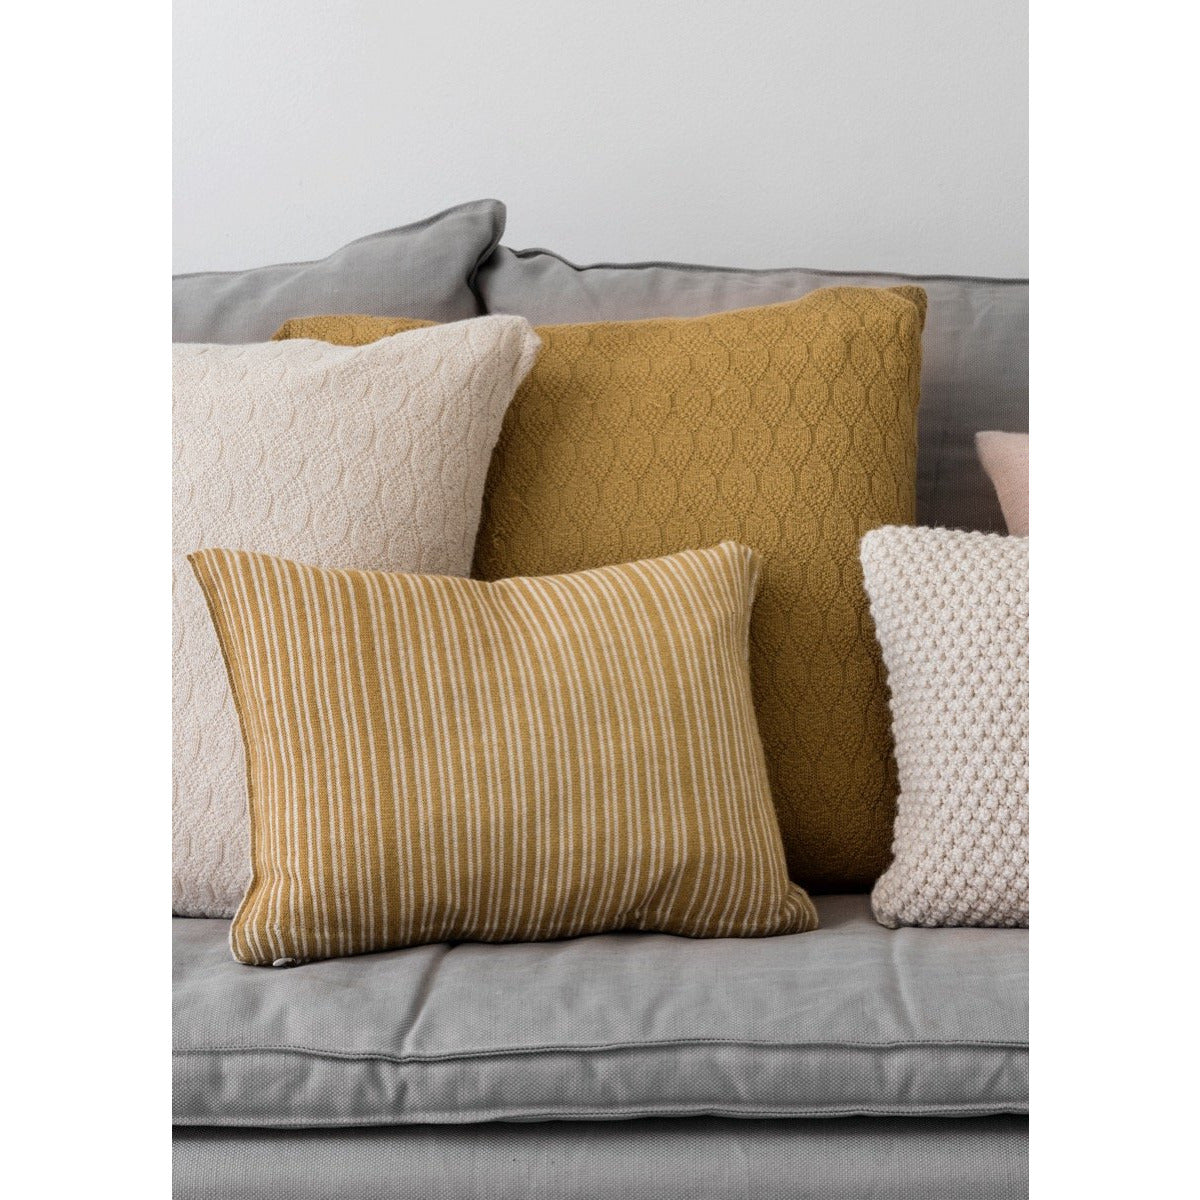 Sienna Elvin Pillow- Rectangular